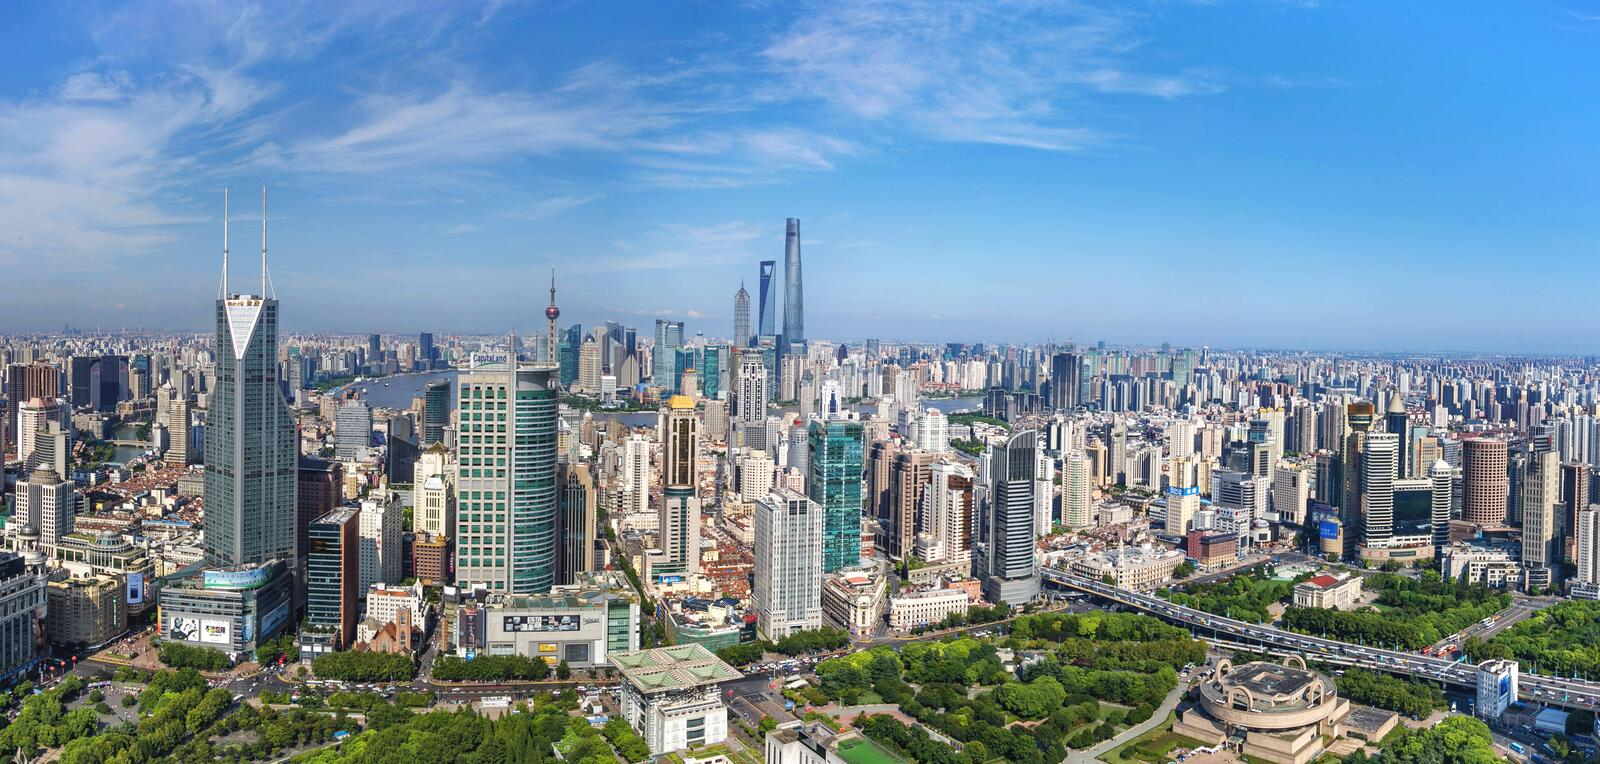 Downtown Shanghai royalty free stock photos